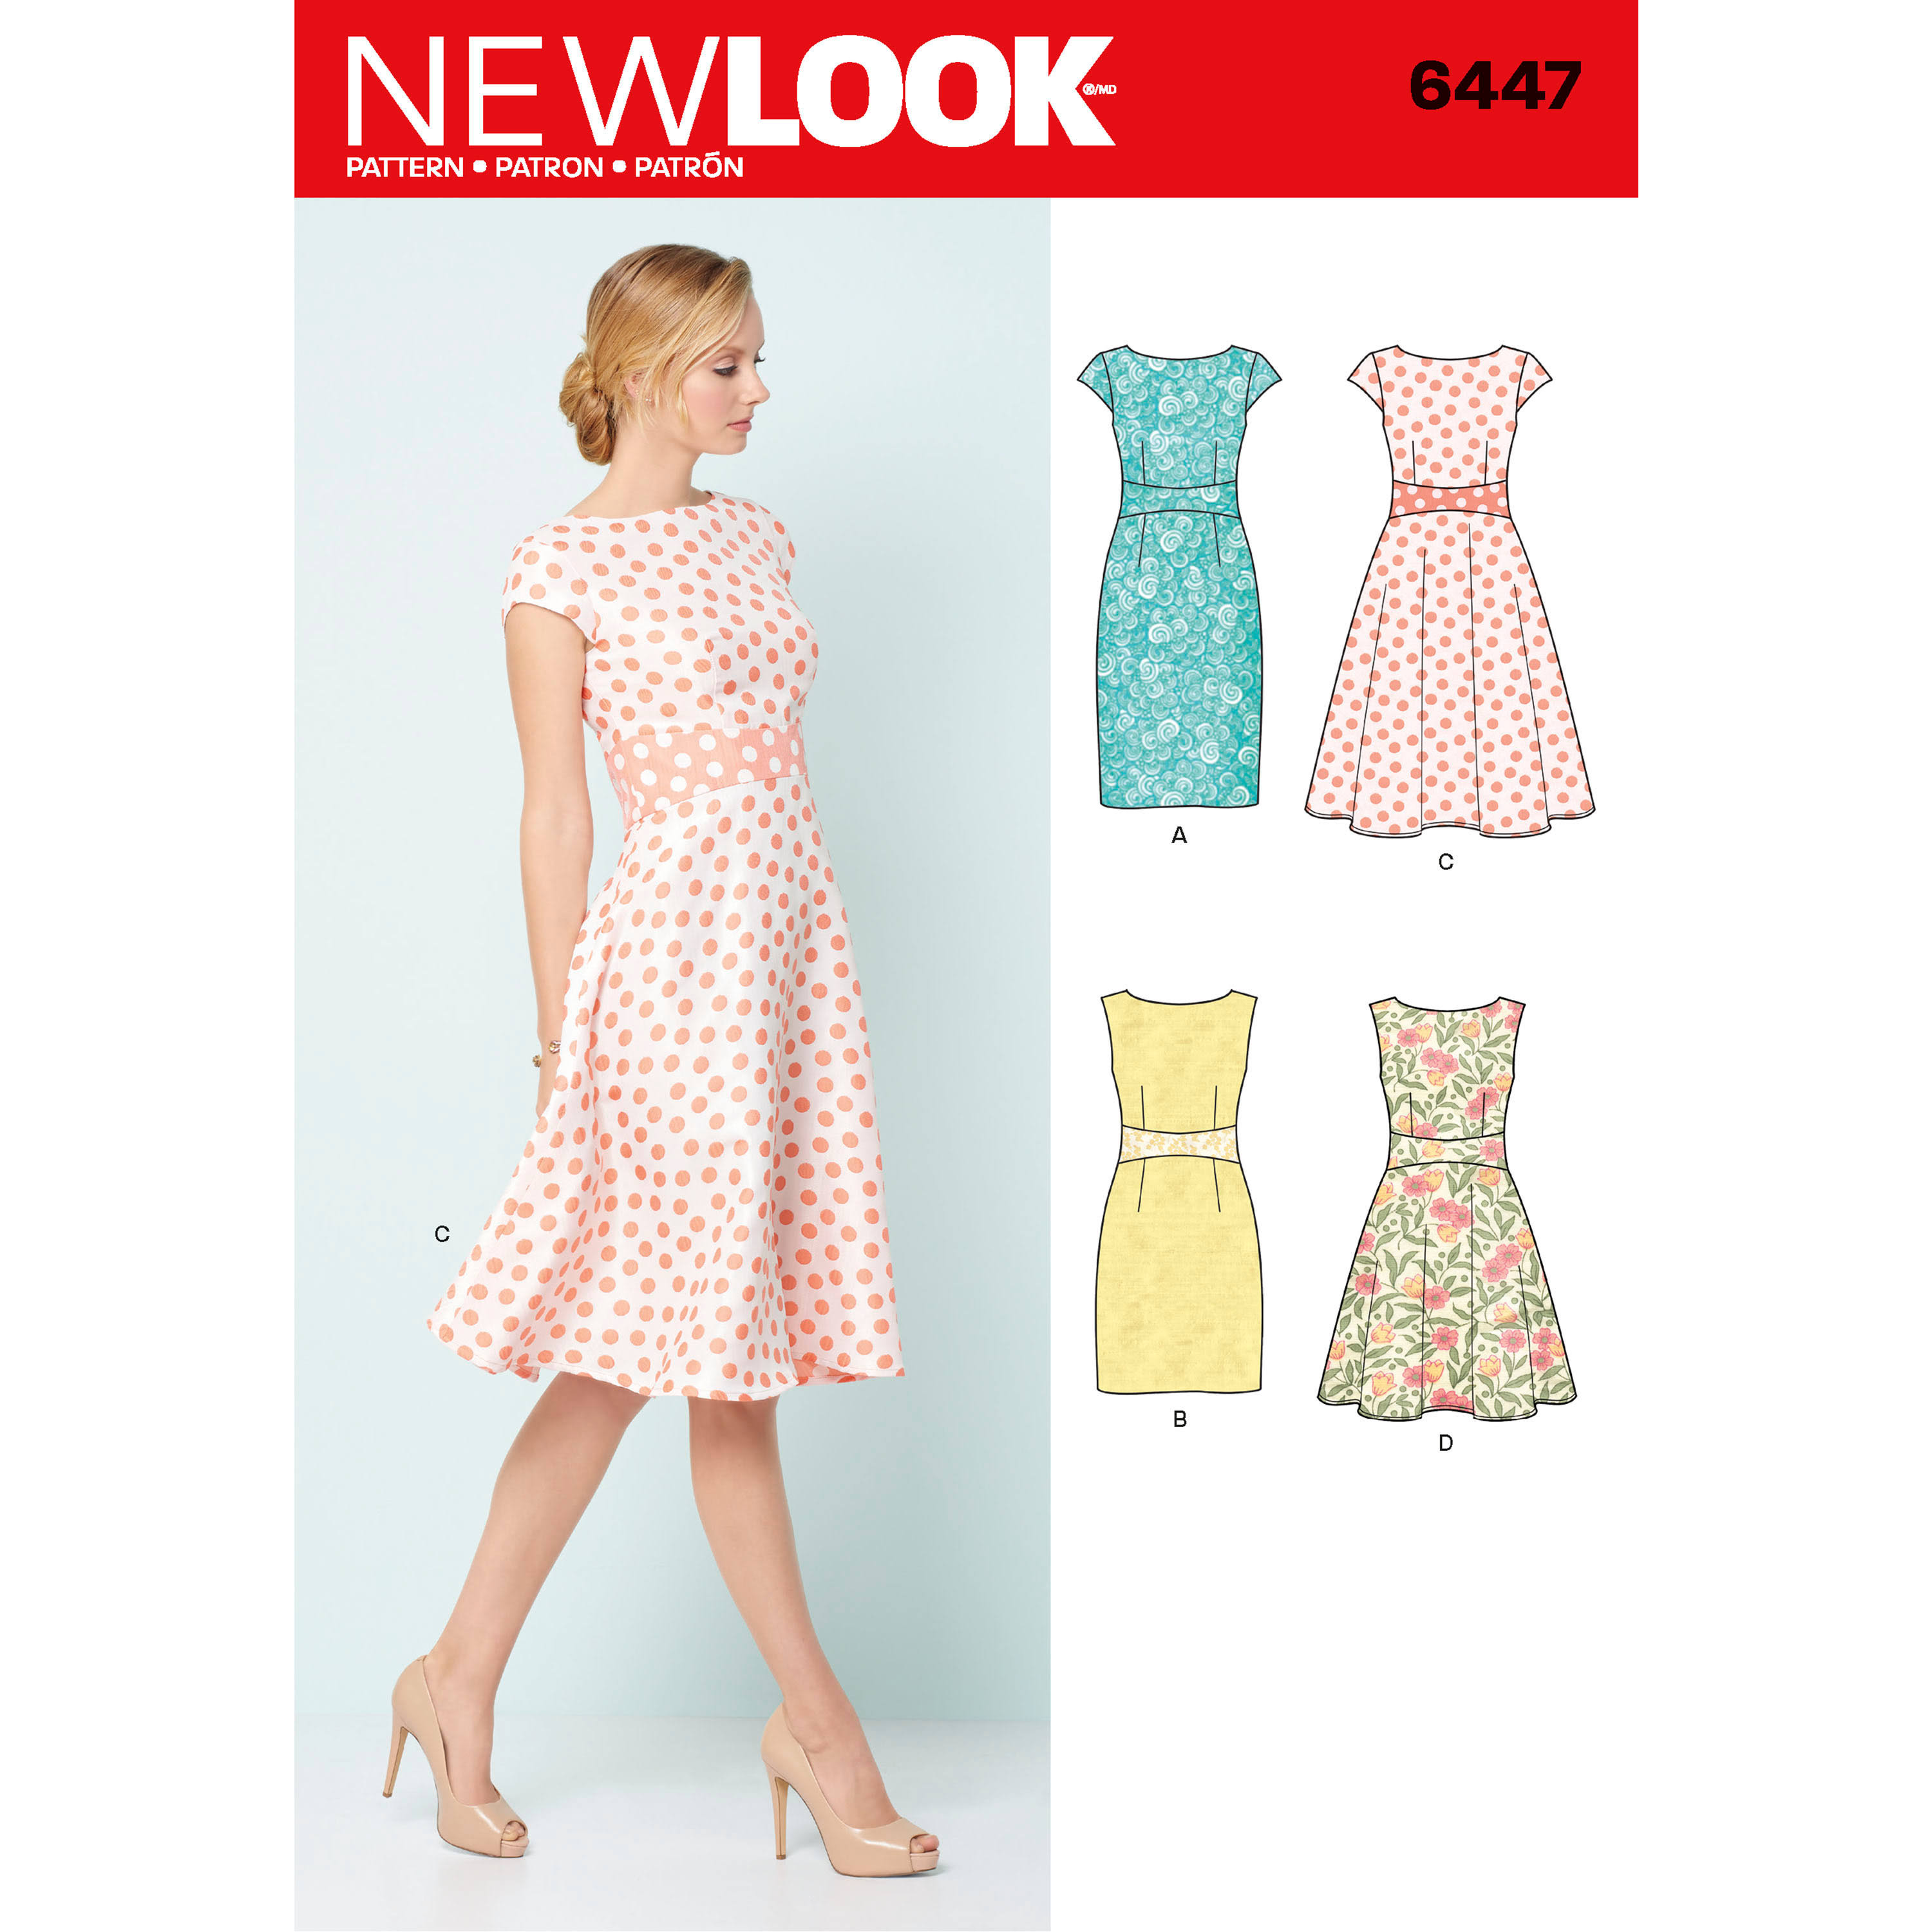 New Look 6447 Sewing Pattern - Misses' Dresses